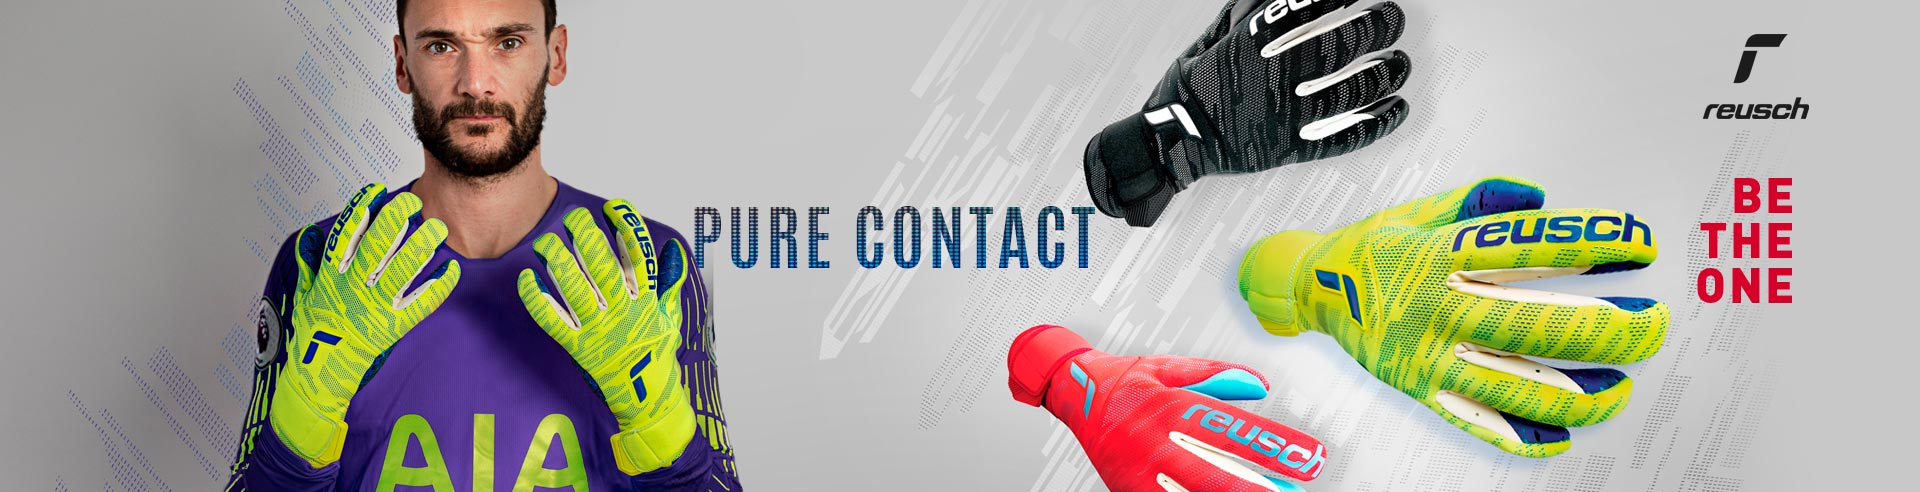 REUSCH PURE CONTACT ENERO 2021 GUANTES